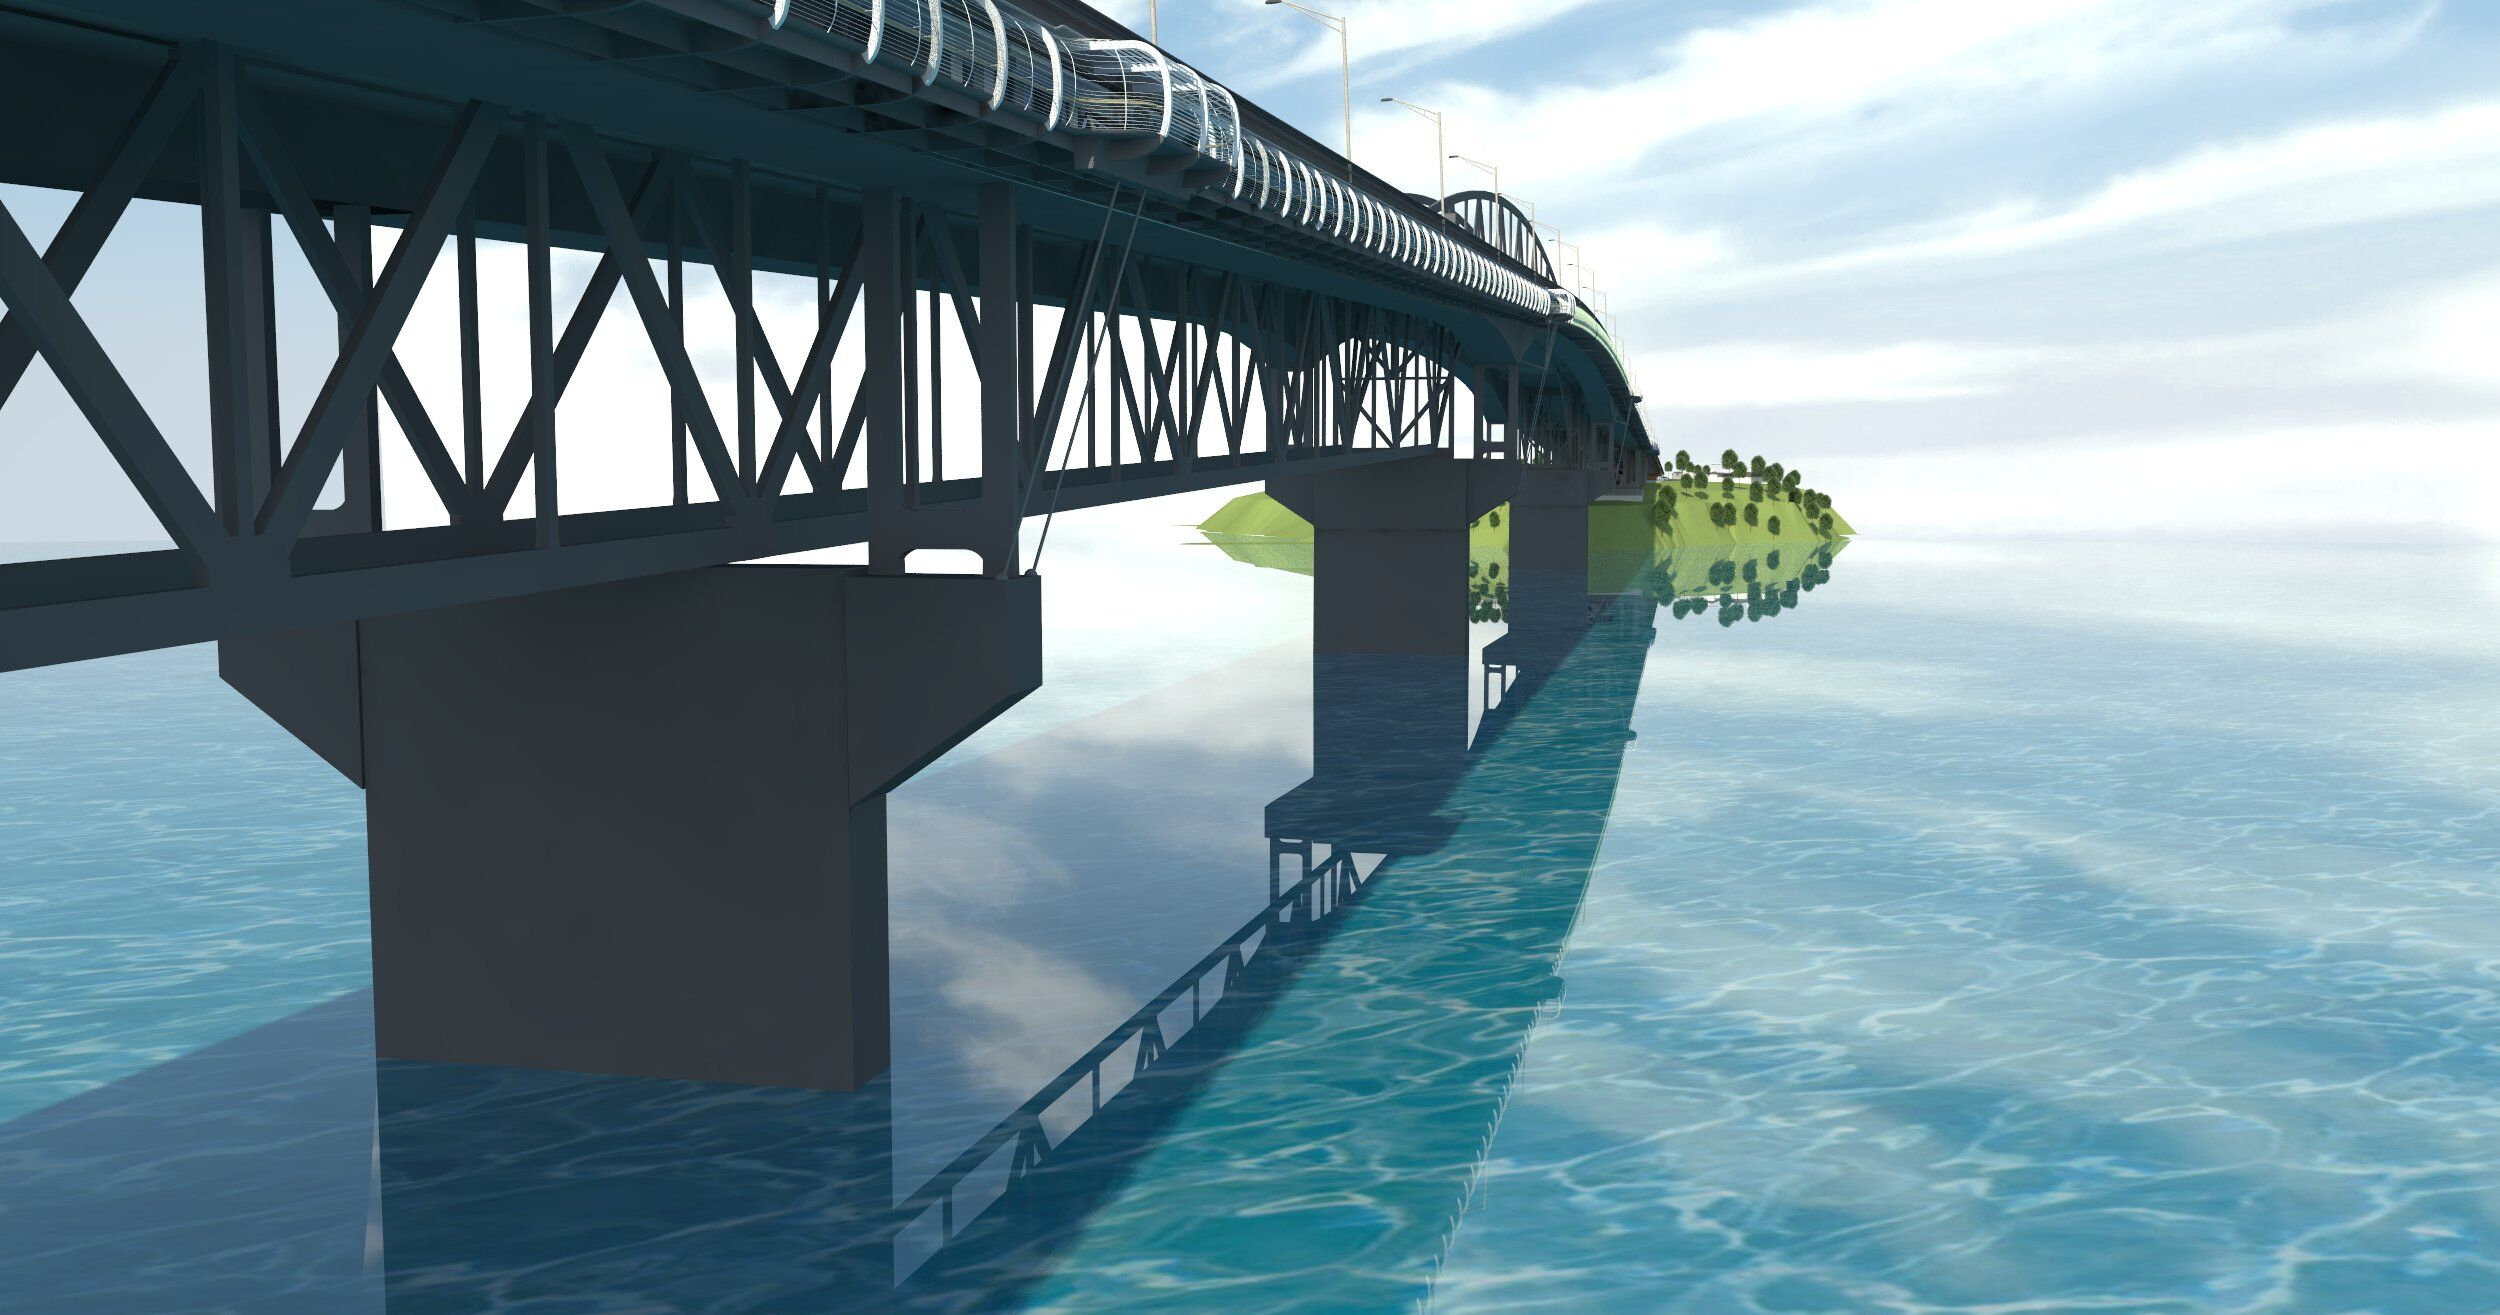 SkyPath has been under discussion for a decade.